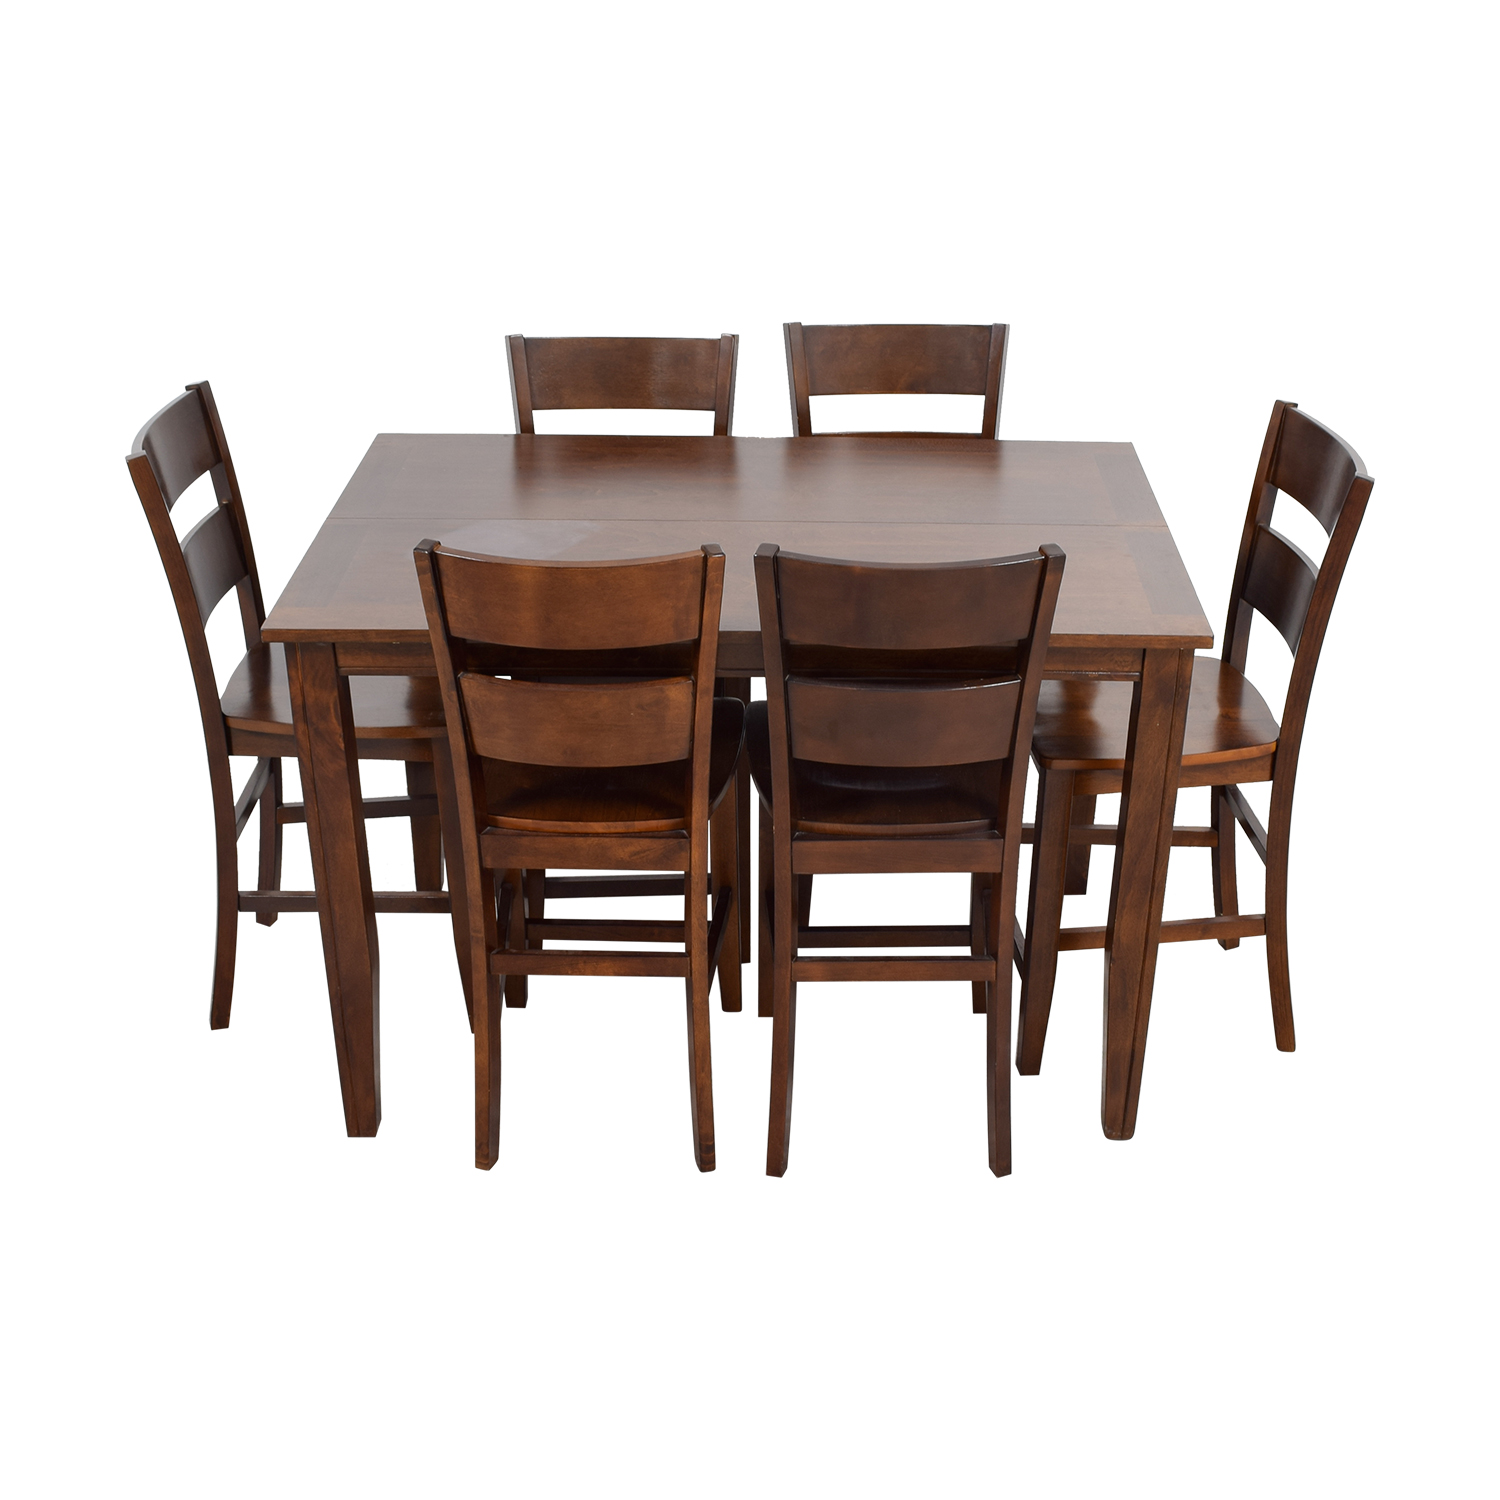 Bobs Furniture Bobs Furniture Wood Pub Dining Set second hand